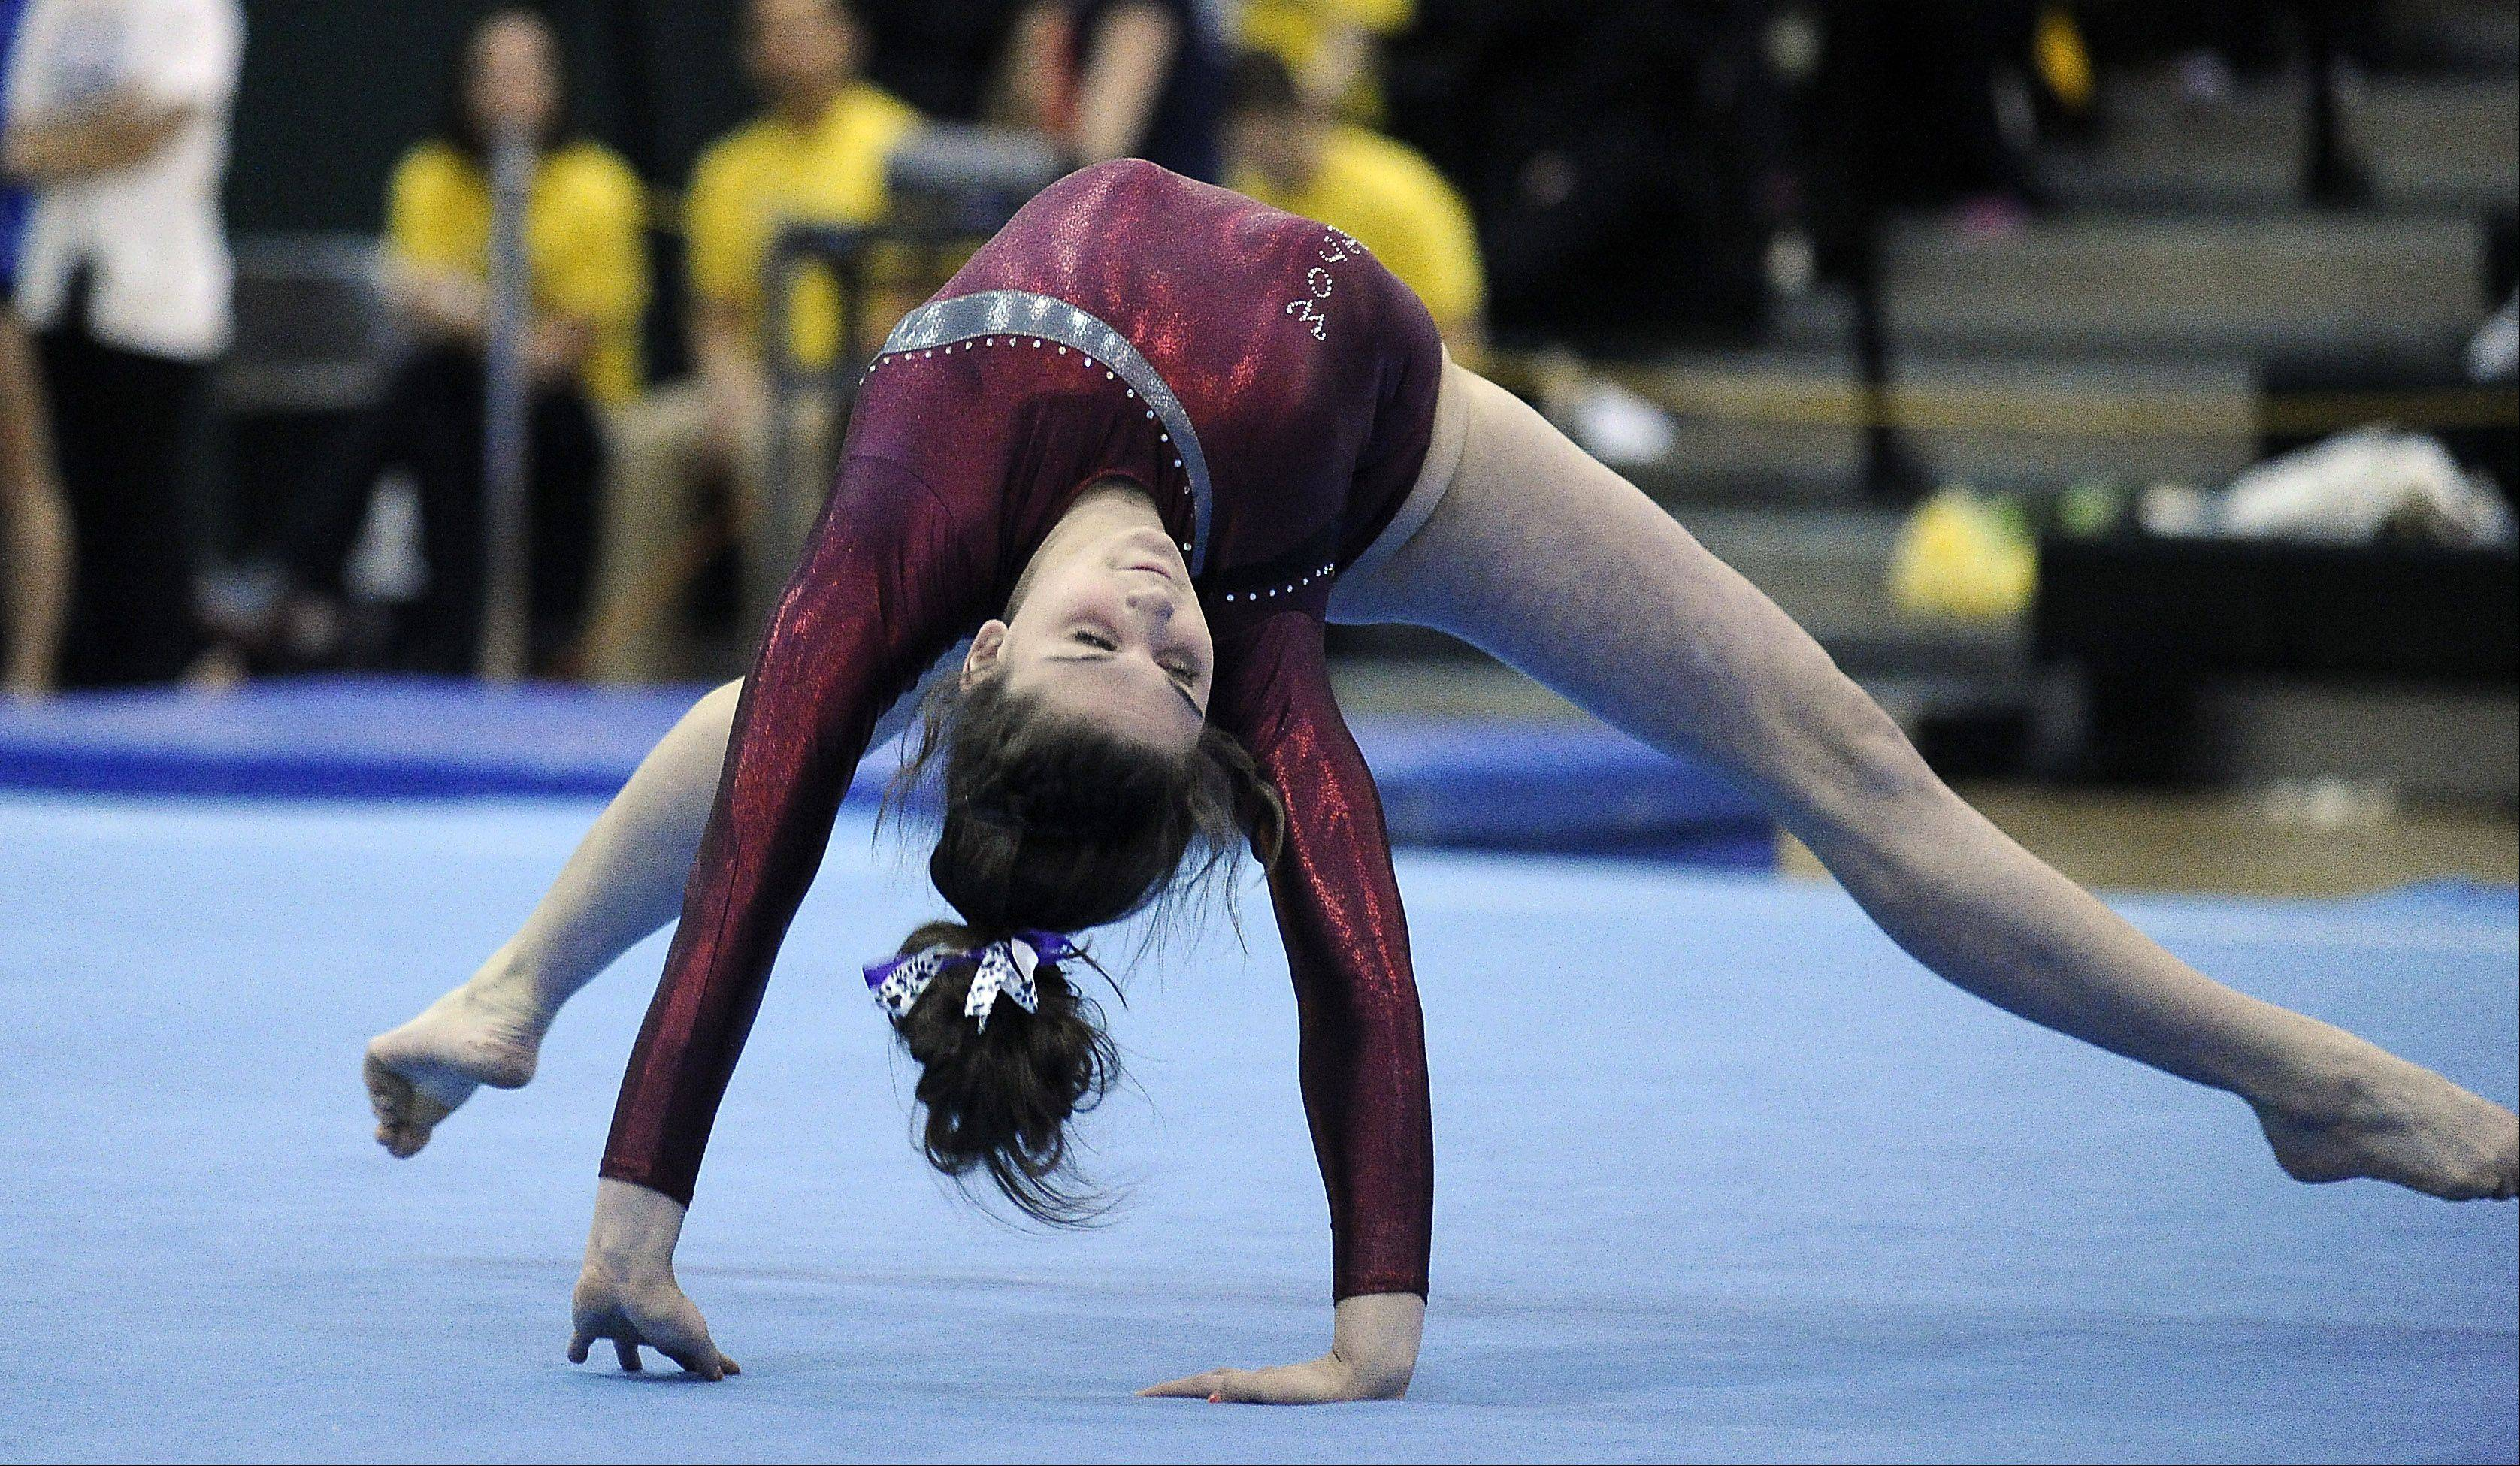 Prairie Ridge's Rachael Underwood works floor exercise during sectional action Monday at Fremd.